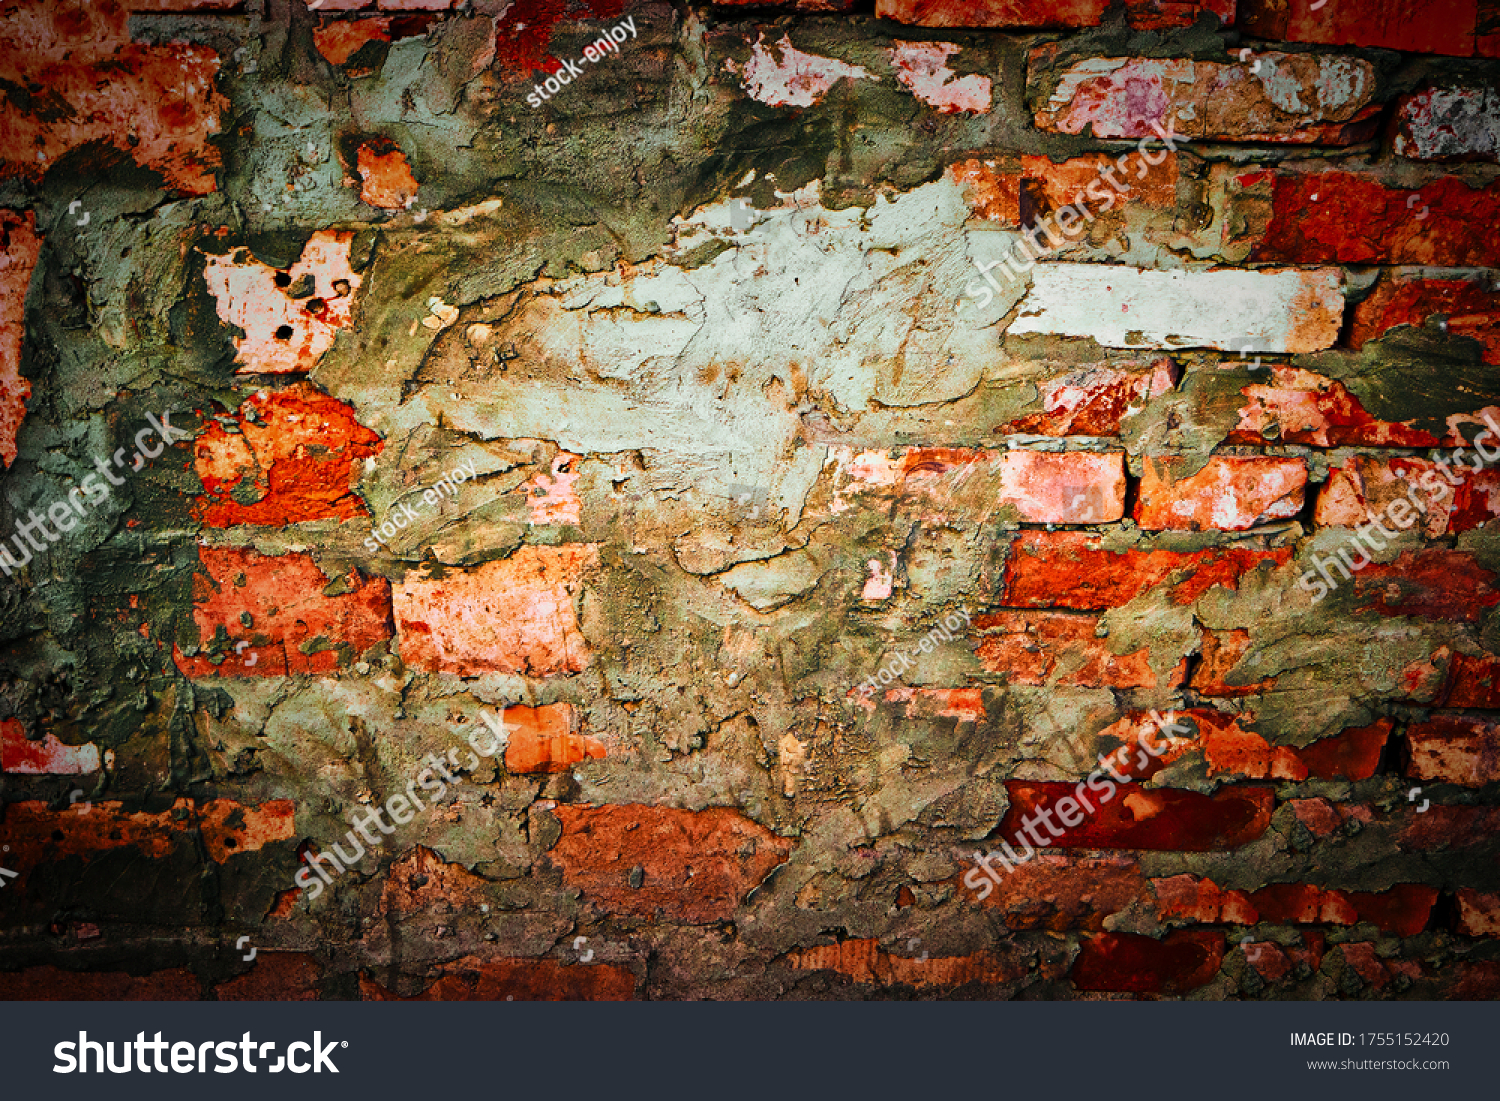 Red brick wall with messy spots of cement plaster on. Framework for design.